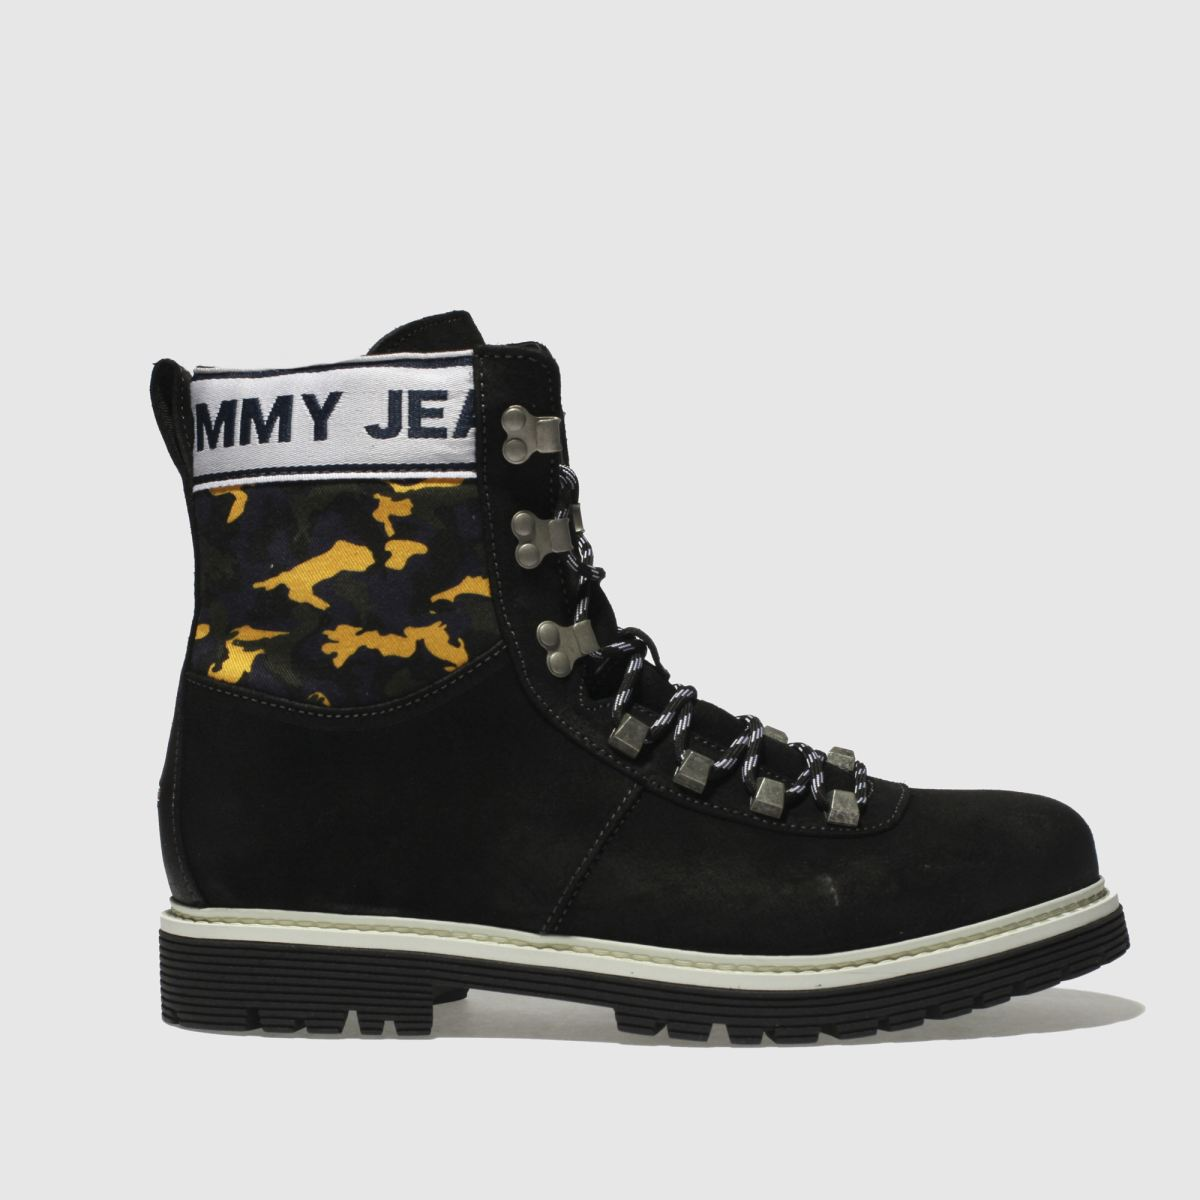 Tommy Hilfiger Black Tj Camo Hiking Boots